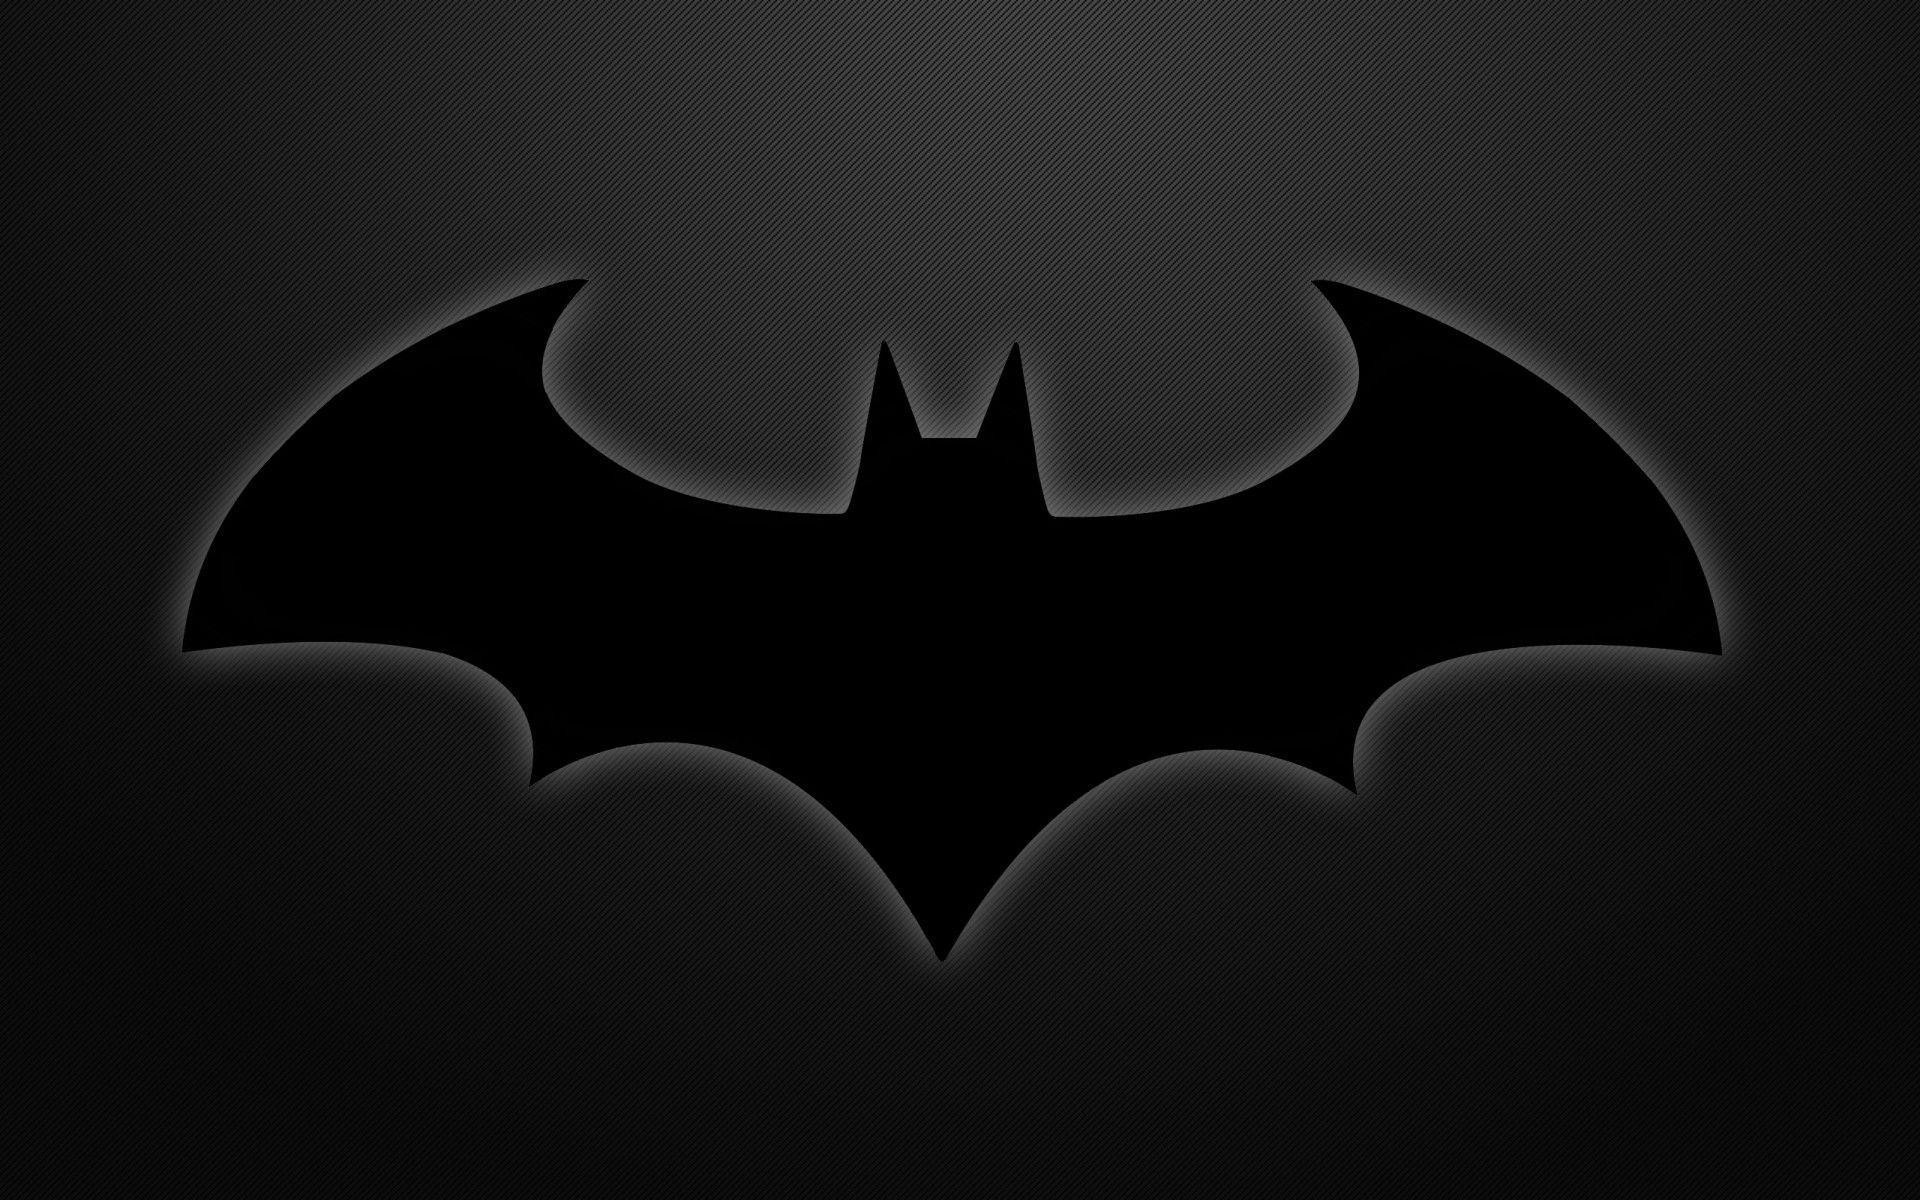 Batman Symbol Wallpaper | High Quality Resolutions Wallpapers and .